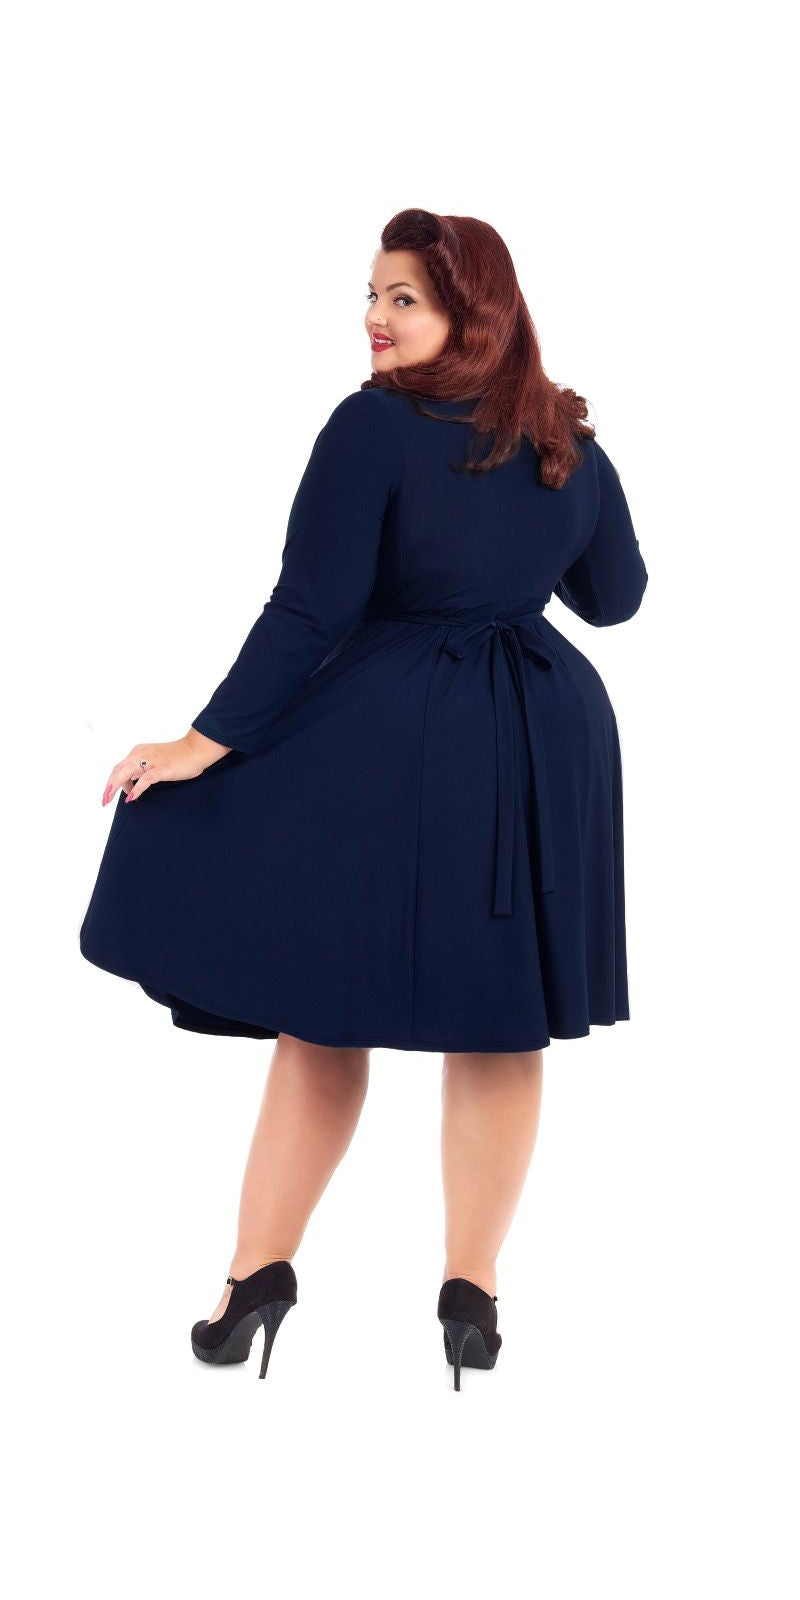 Lyra Navy Dress - Long Sleeve